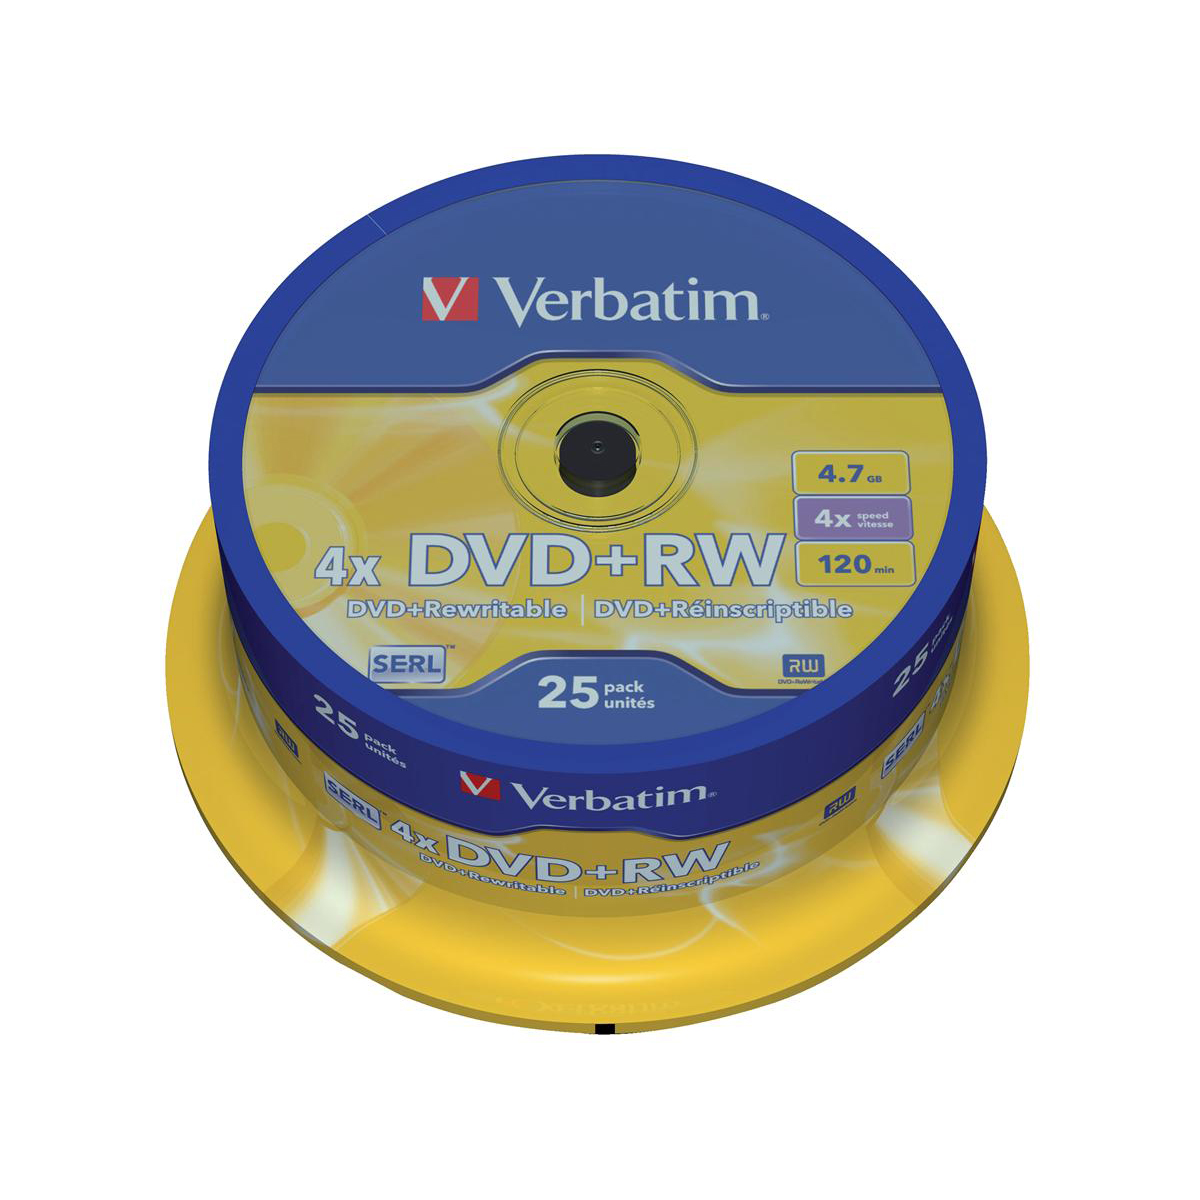 Image for Verbatim DVD+RW Rewritable Disk Spindle 1x-4x Speed 120min 4.7Gb Ref 43489 [Pack 25]